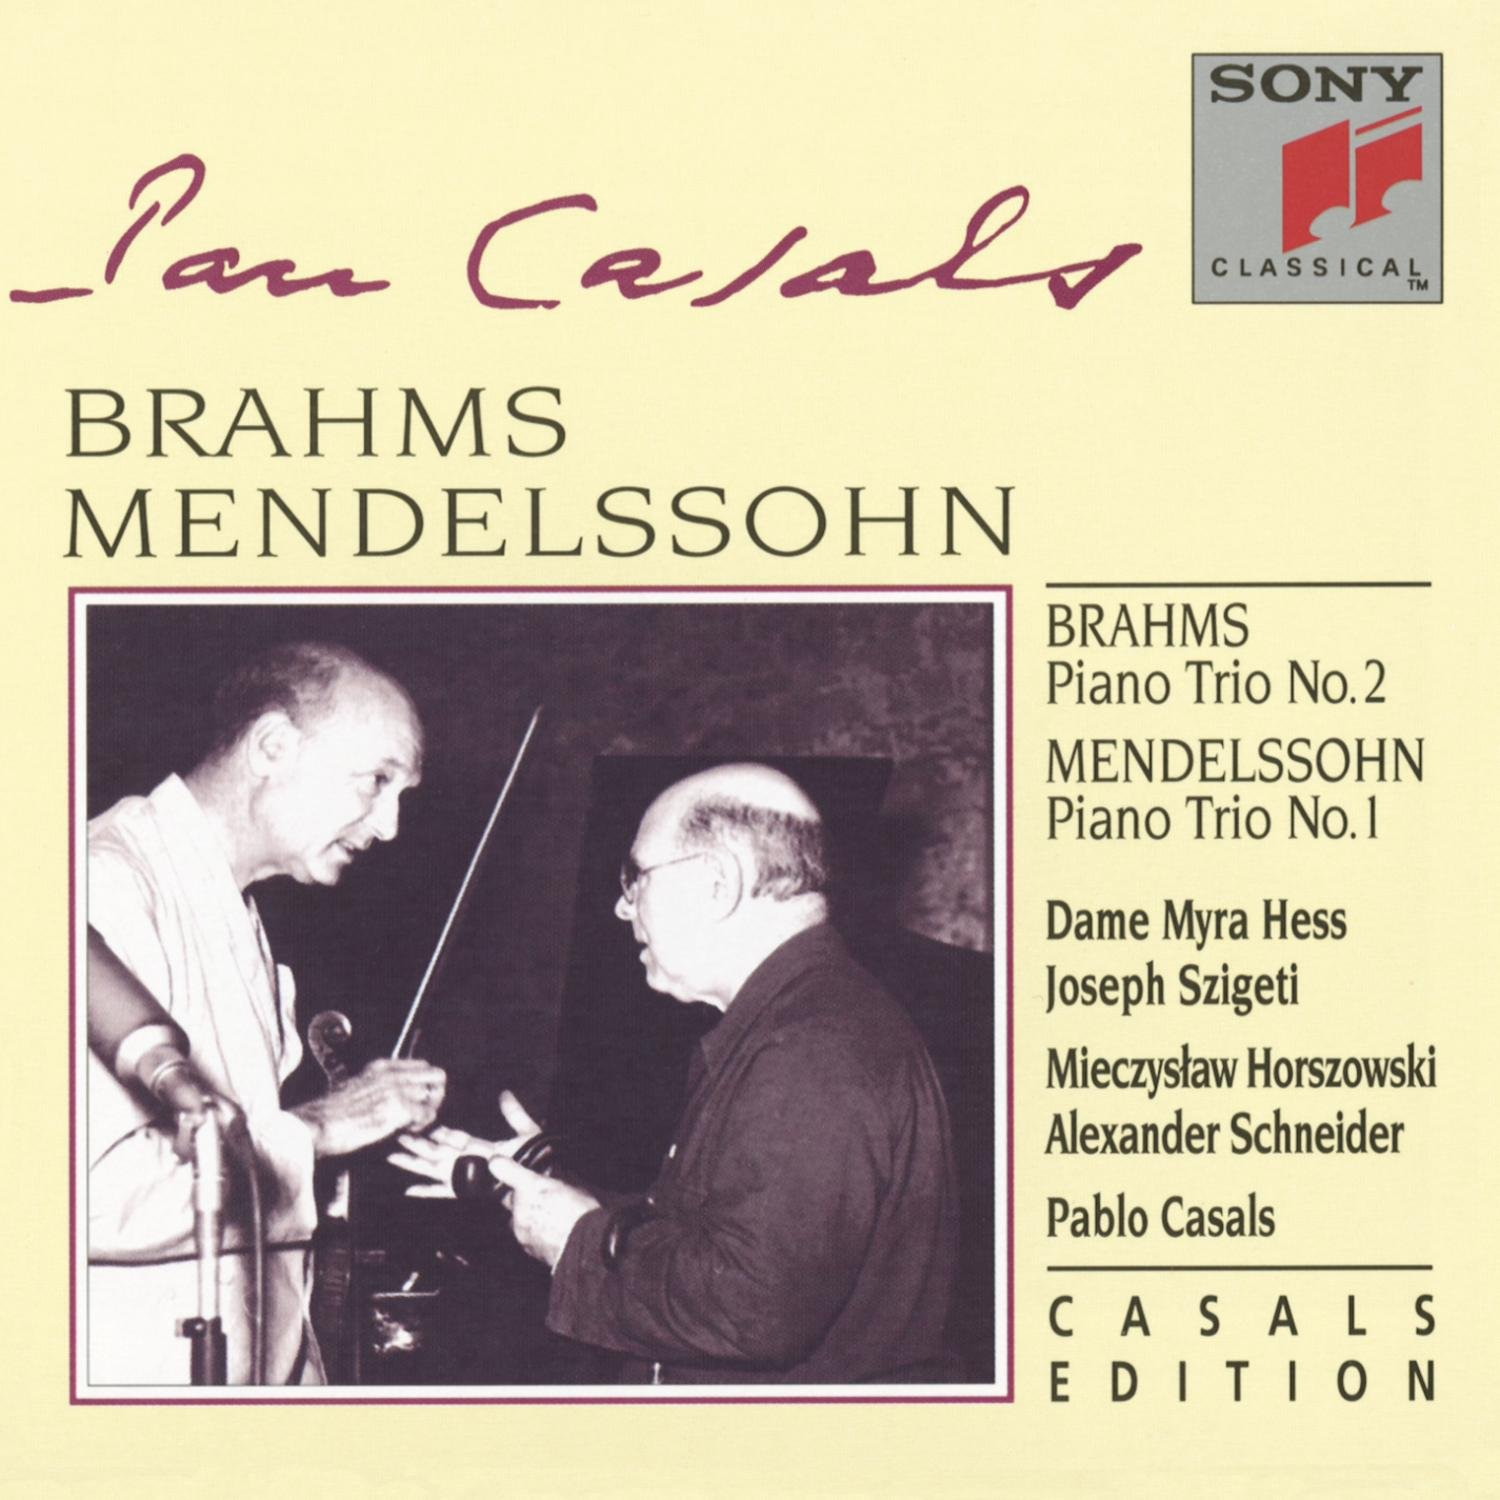 Brahms: Piano Trio No. 2, Op. 87 / Mendelssohn: Piano Trio No. 1, Op. 49